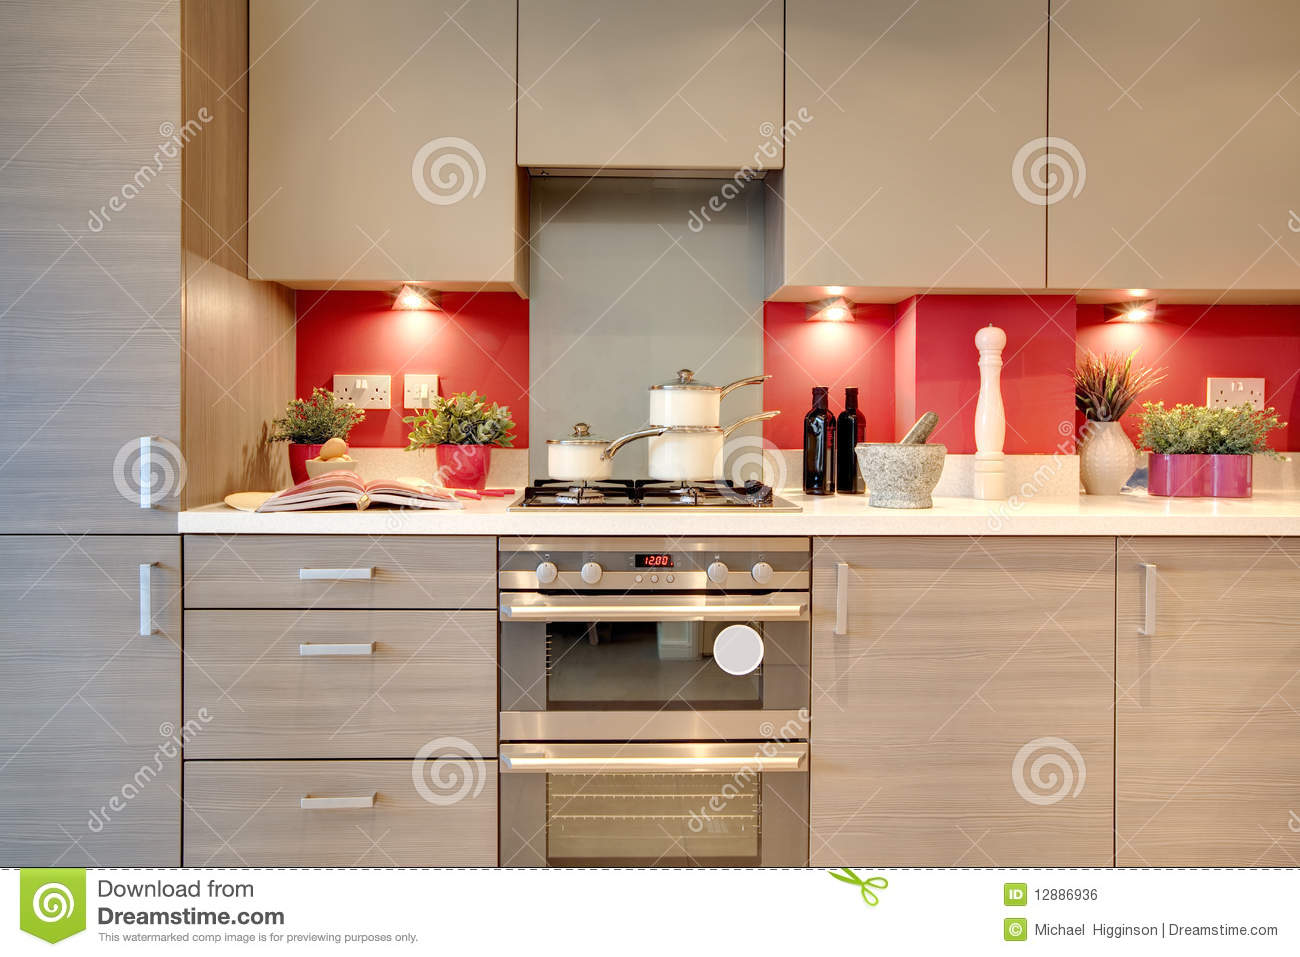 Keuken abstract rood